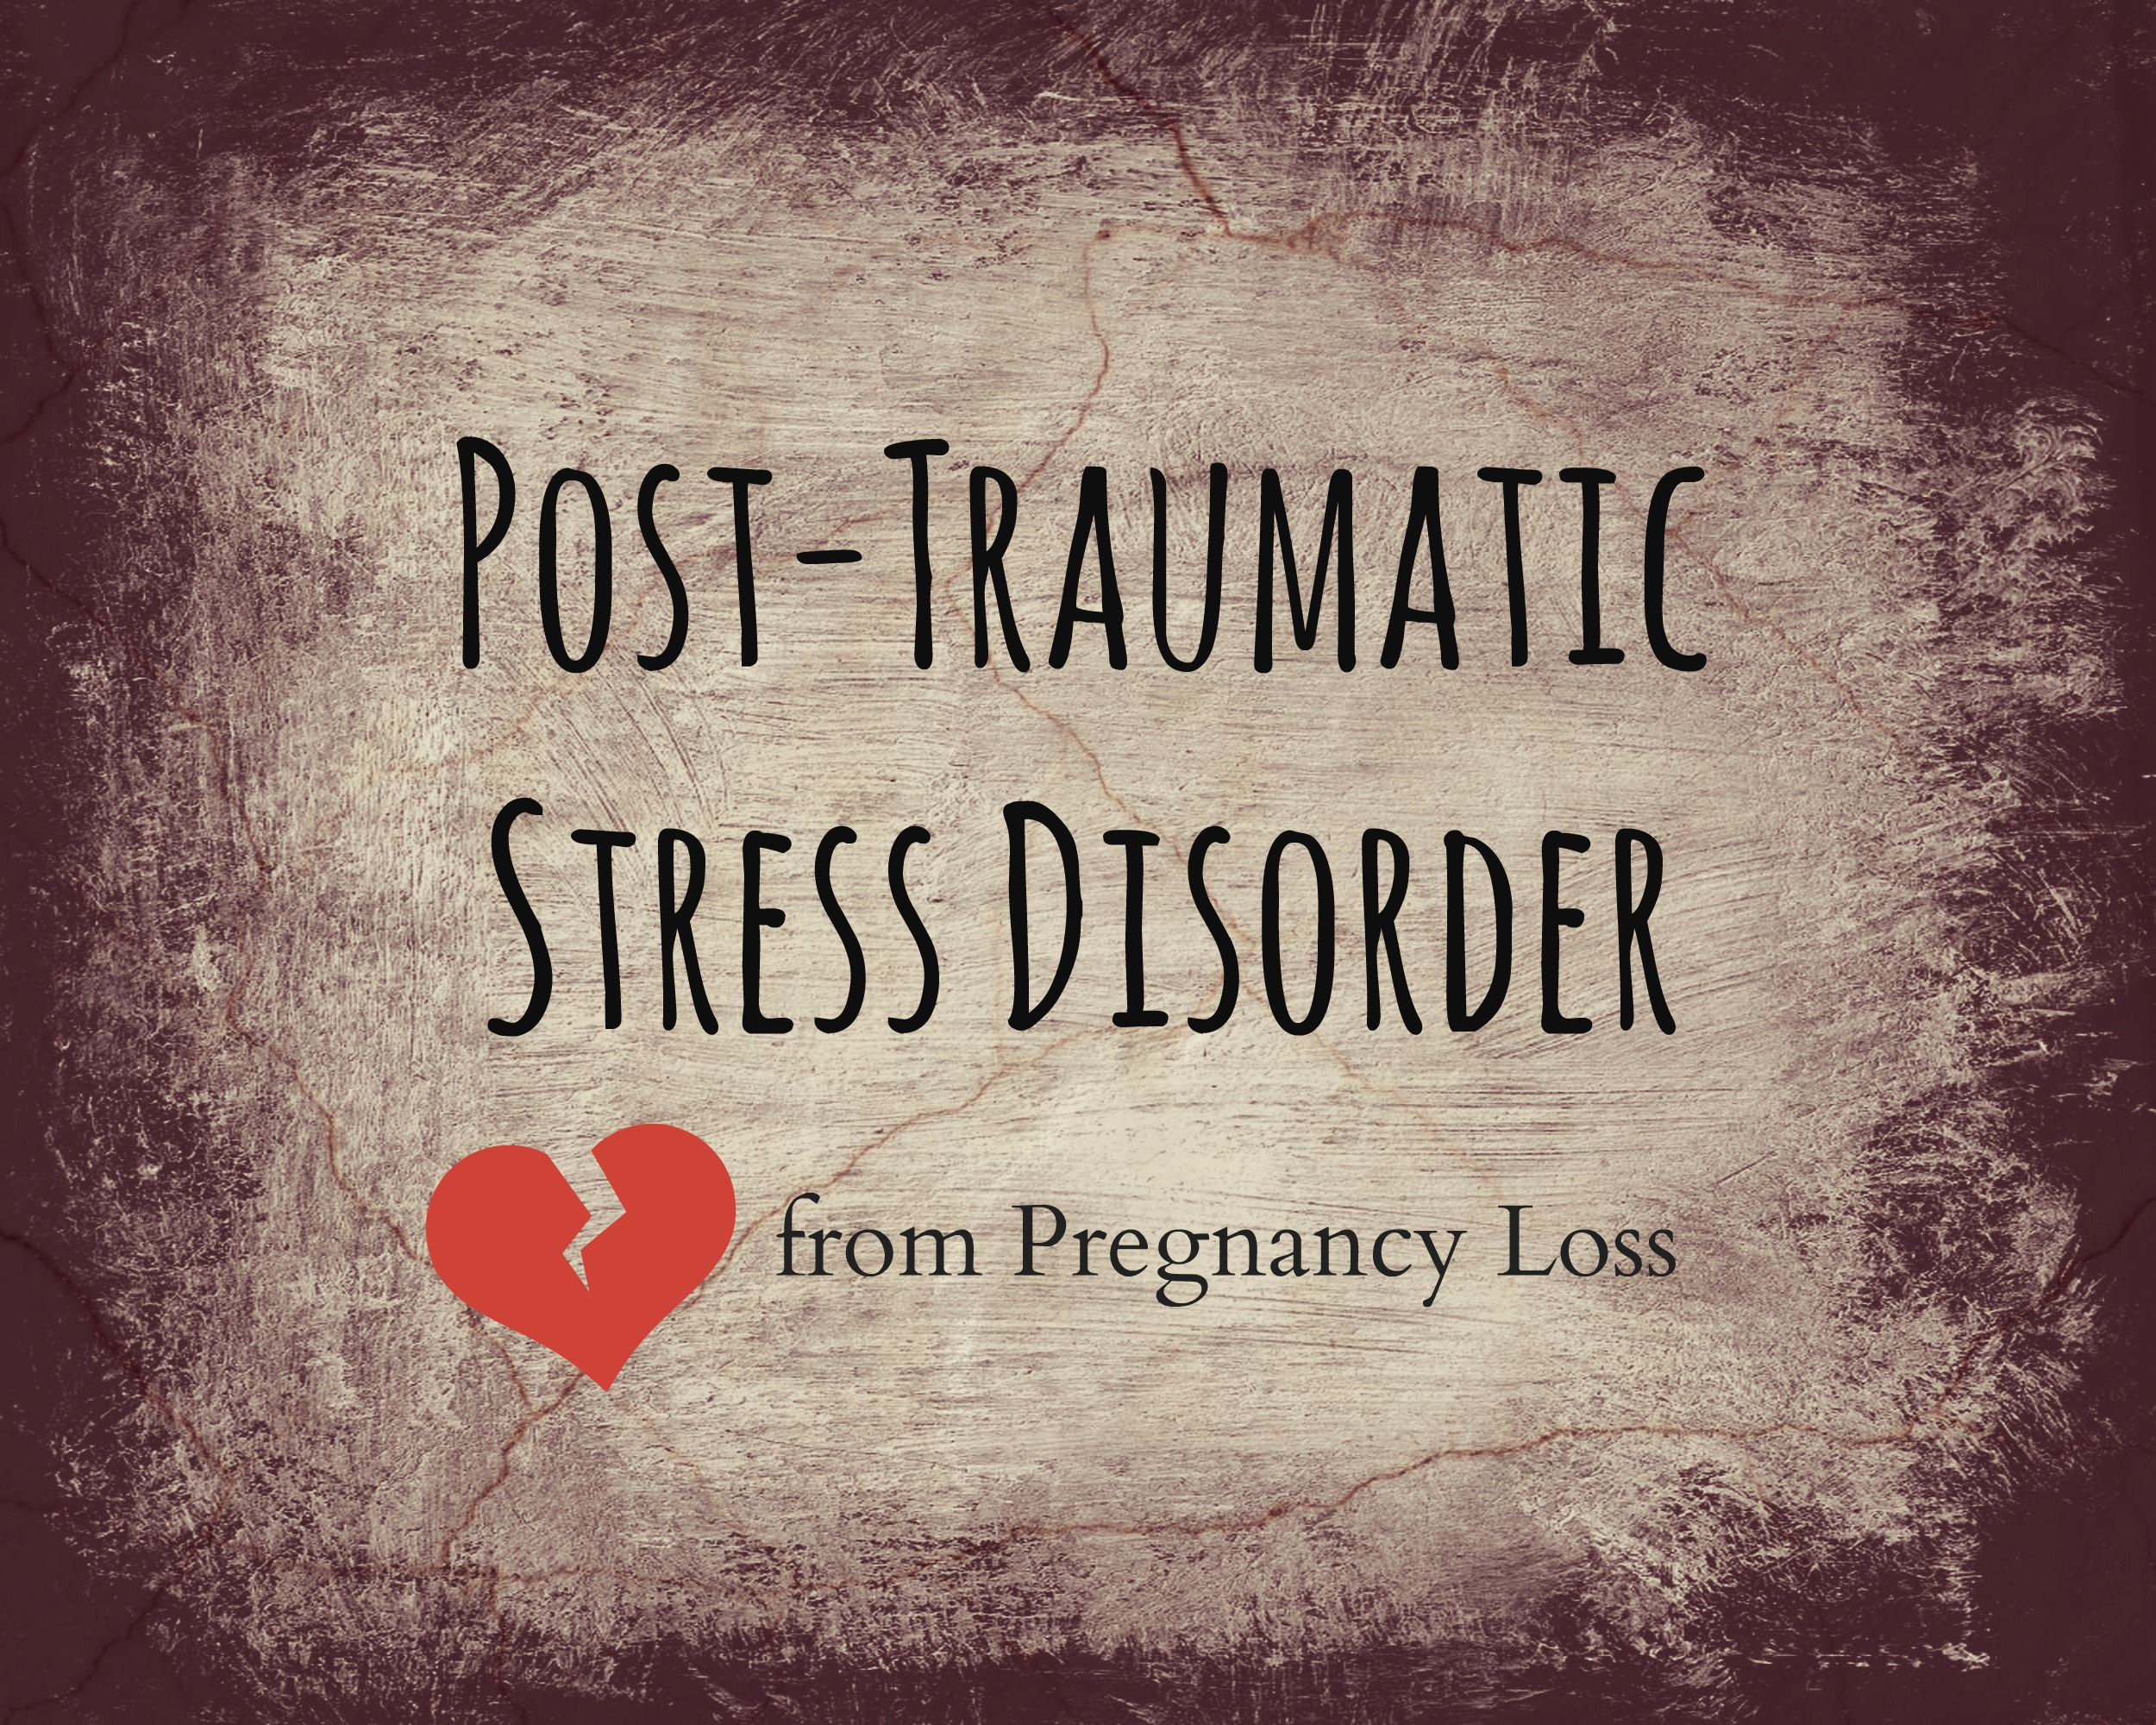 Pregnancy Loss Quotes A Case Of Ptsd From Pregnancy Loss  Still Standing